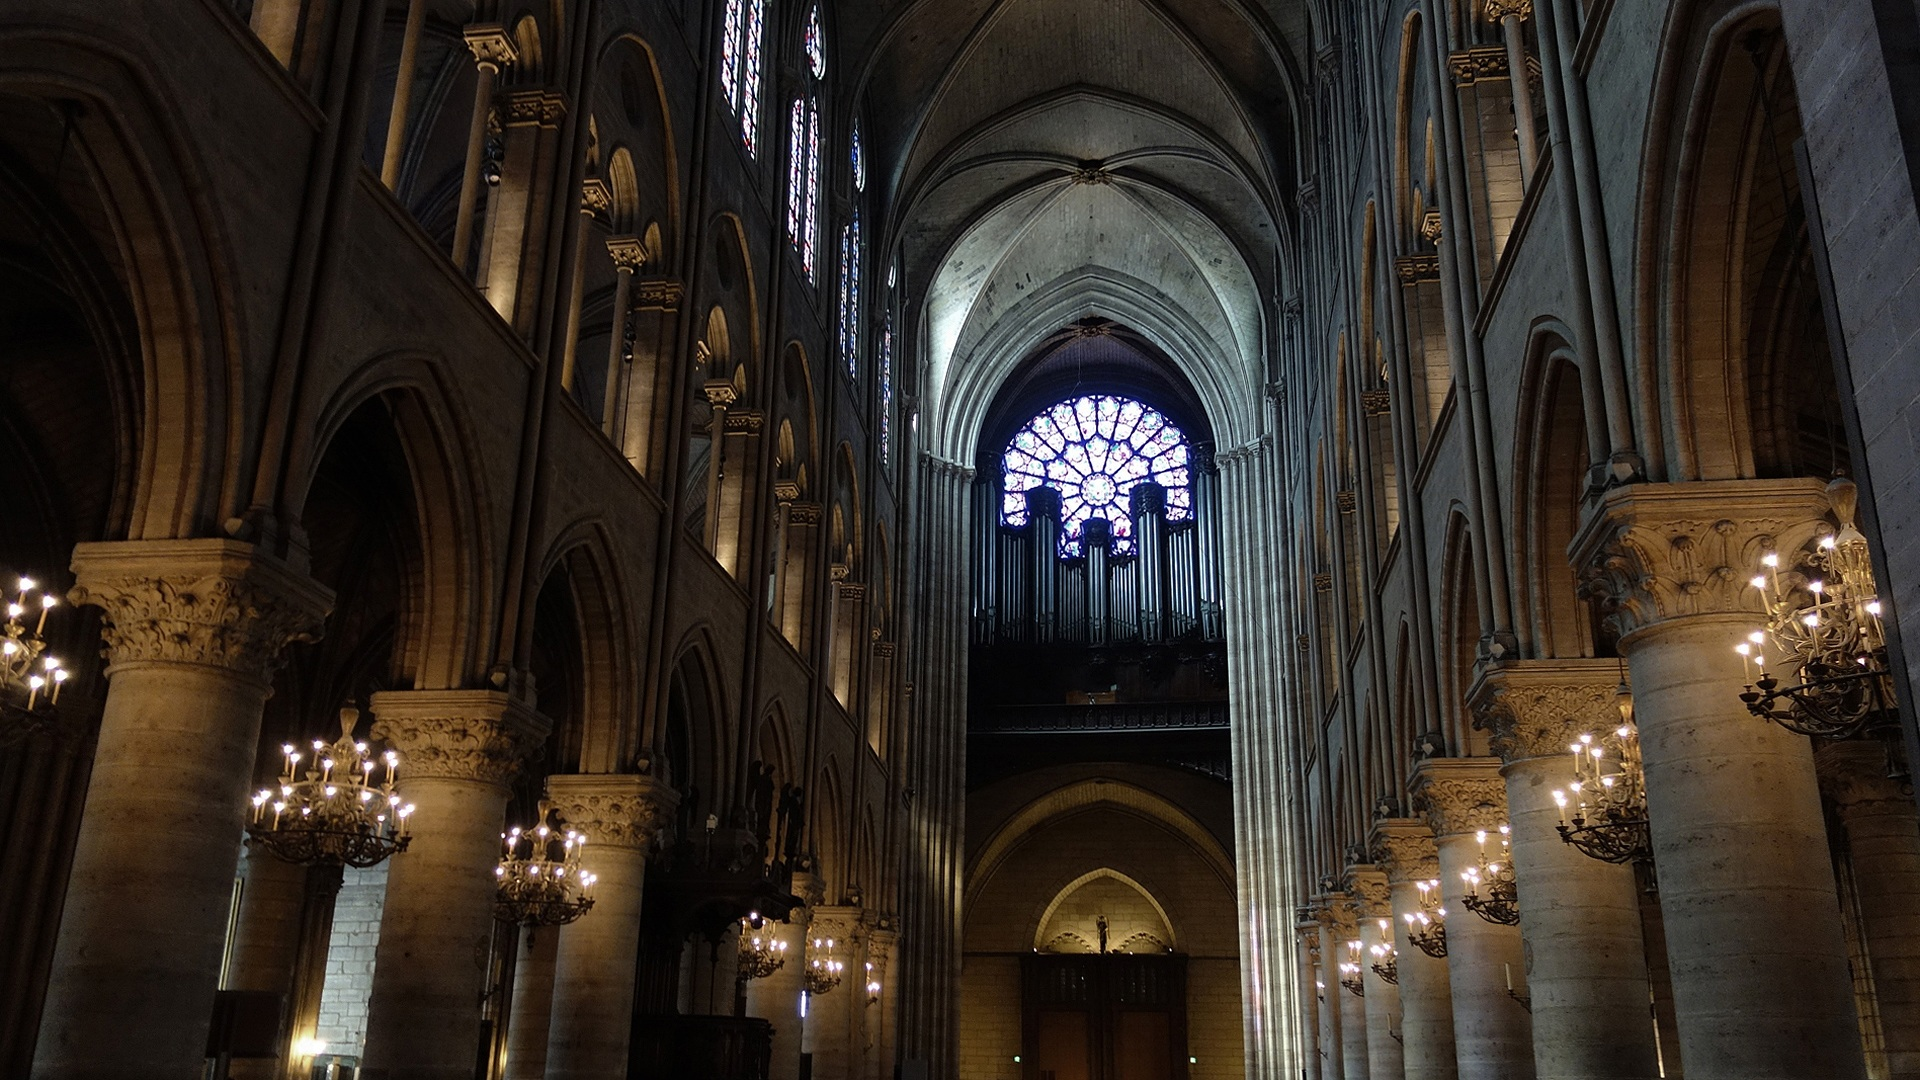 Inside the Notre Dame in Paris, France